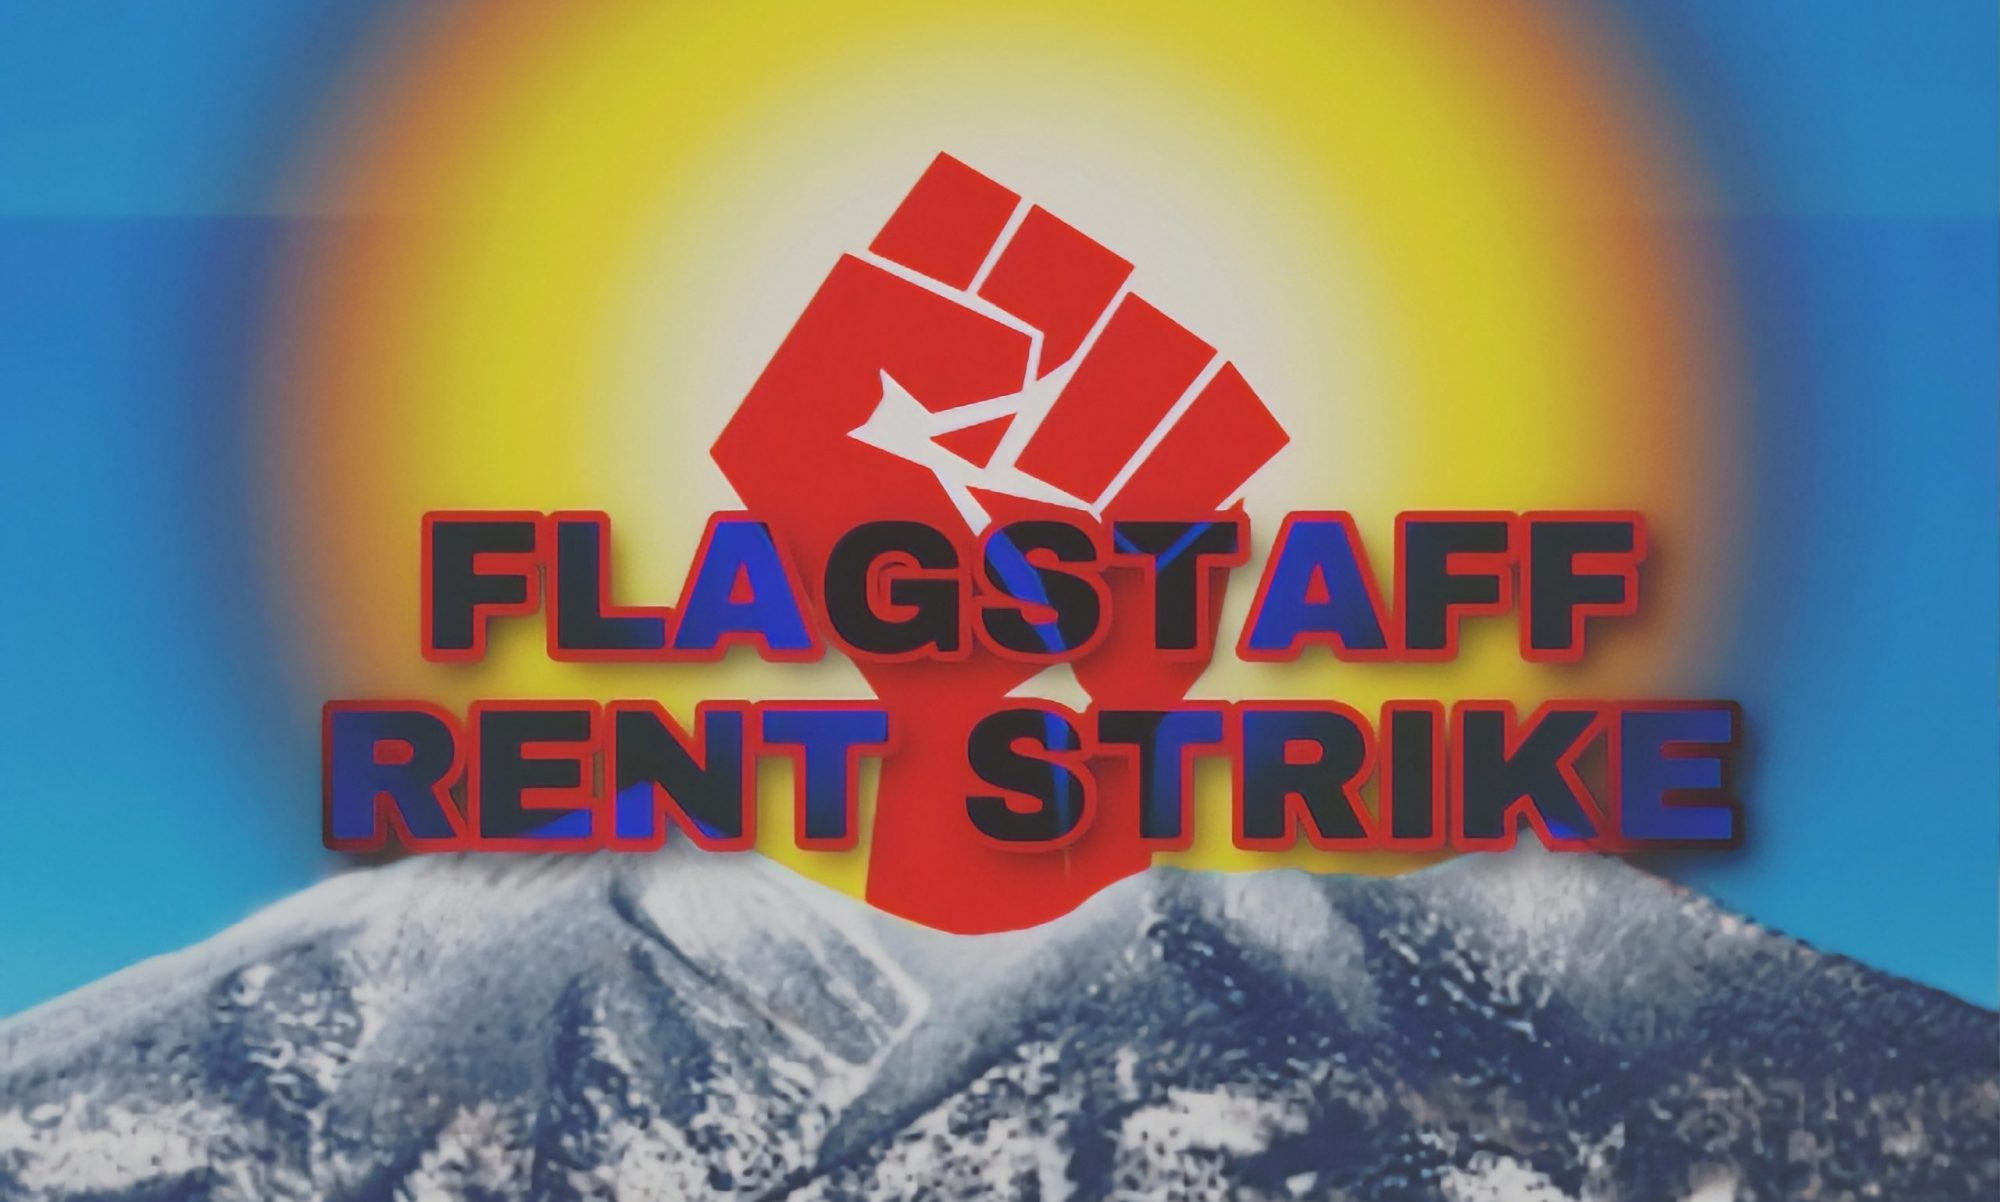 Flagstaff Rent Strike 2020